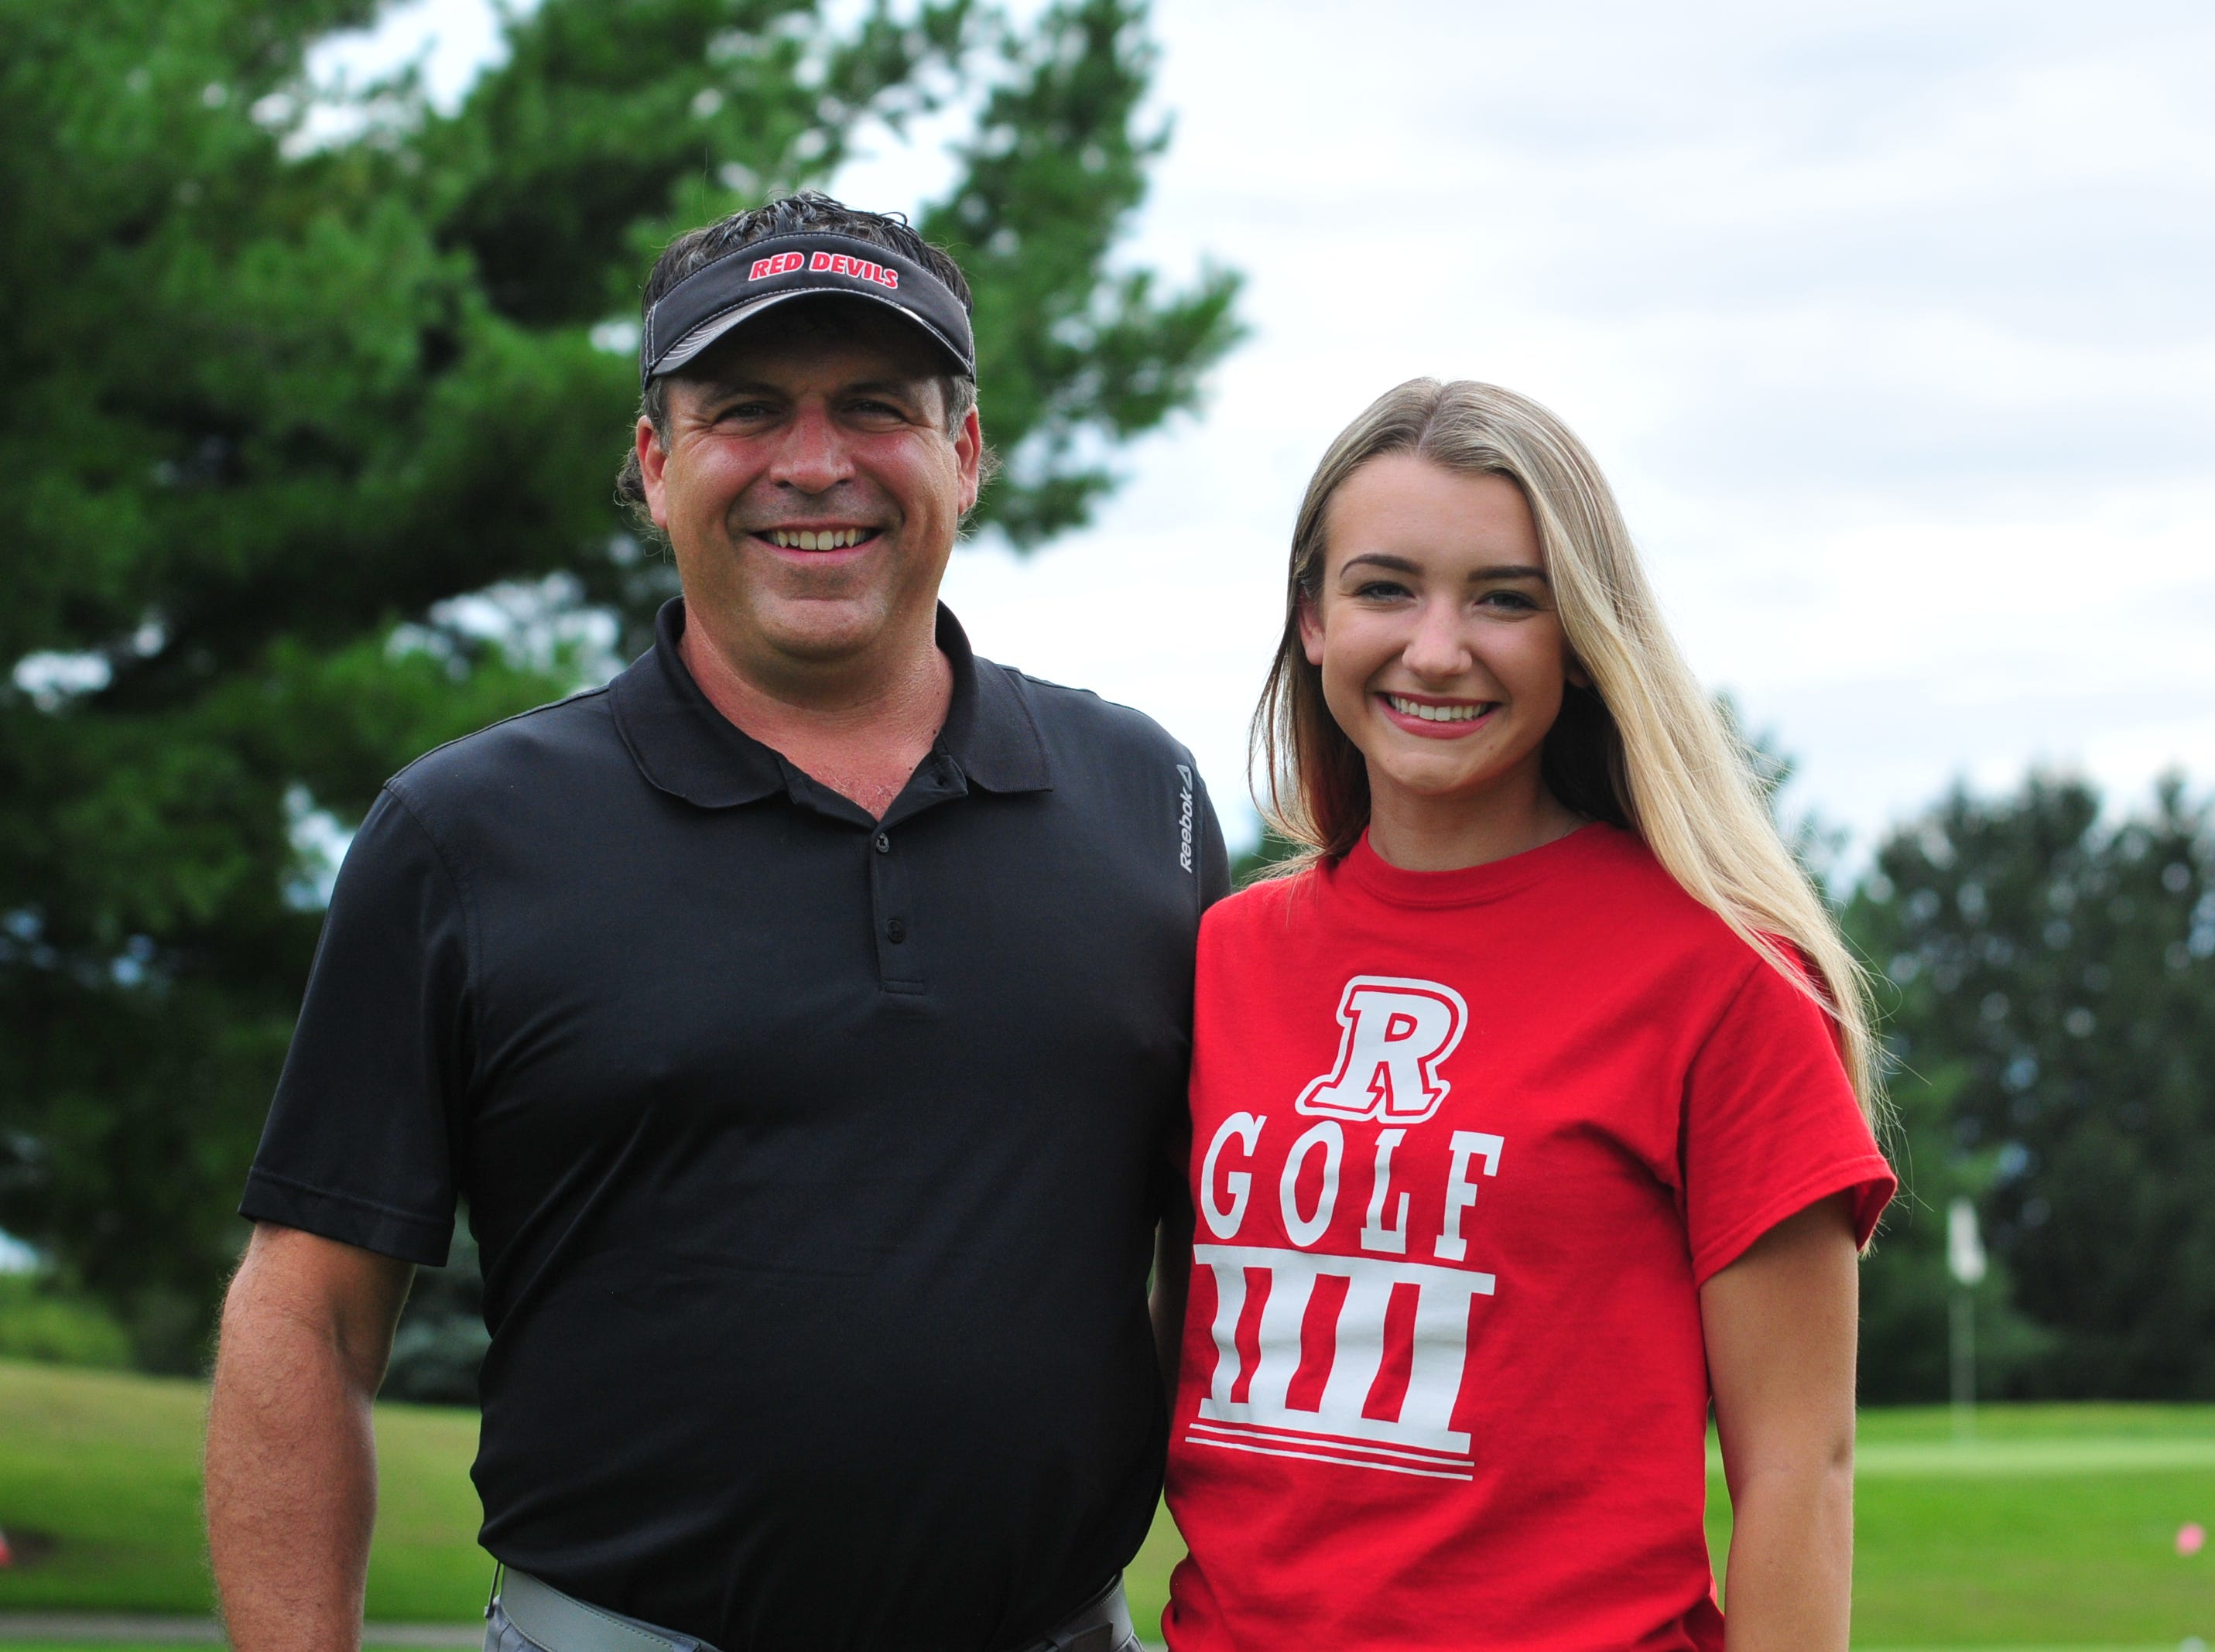 Jesse Owens, left, helped Richmond start an intermediate golf program. His daughter Karissa, right, is currently a senior and his third daughter to play for the Red Devils.